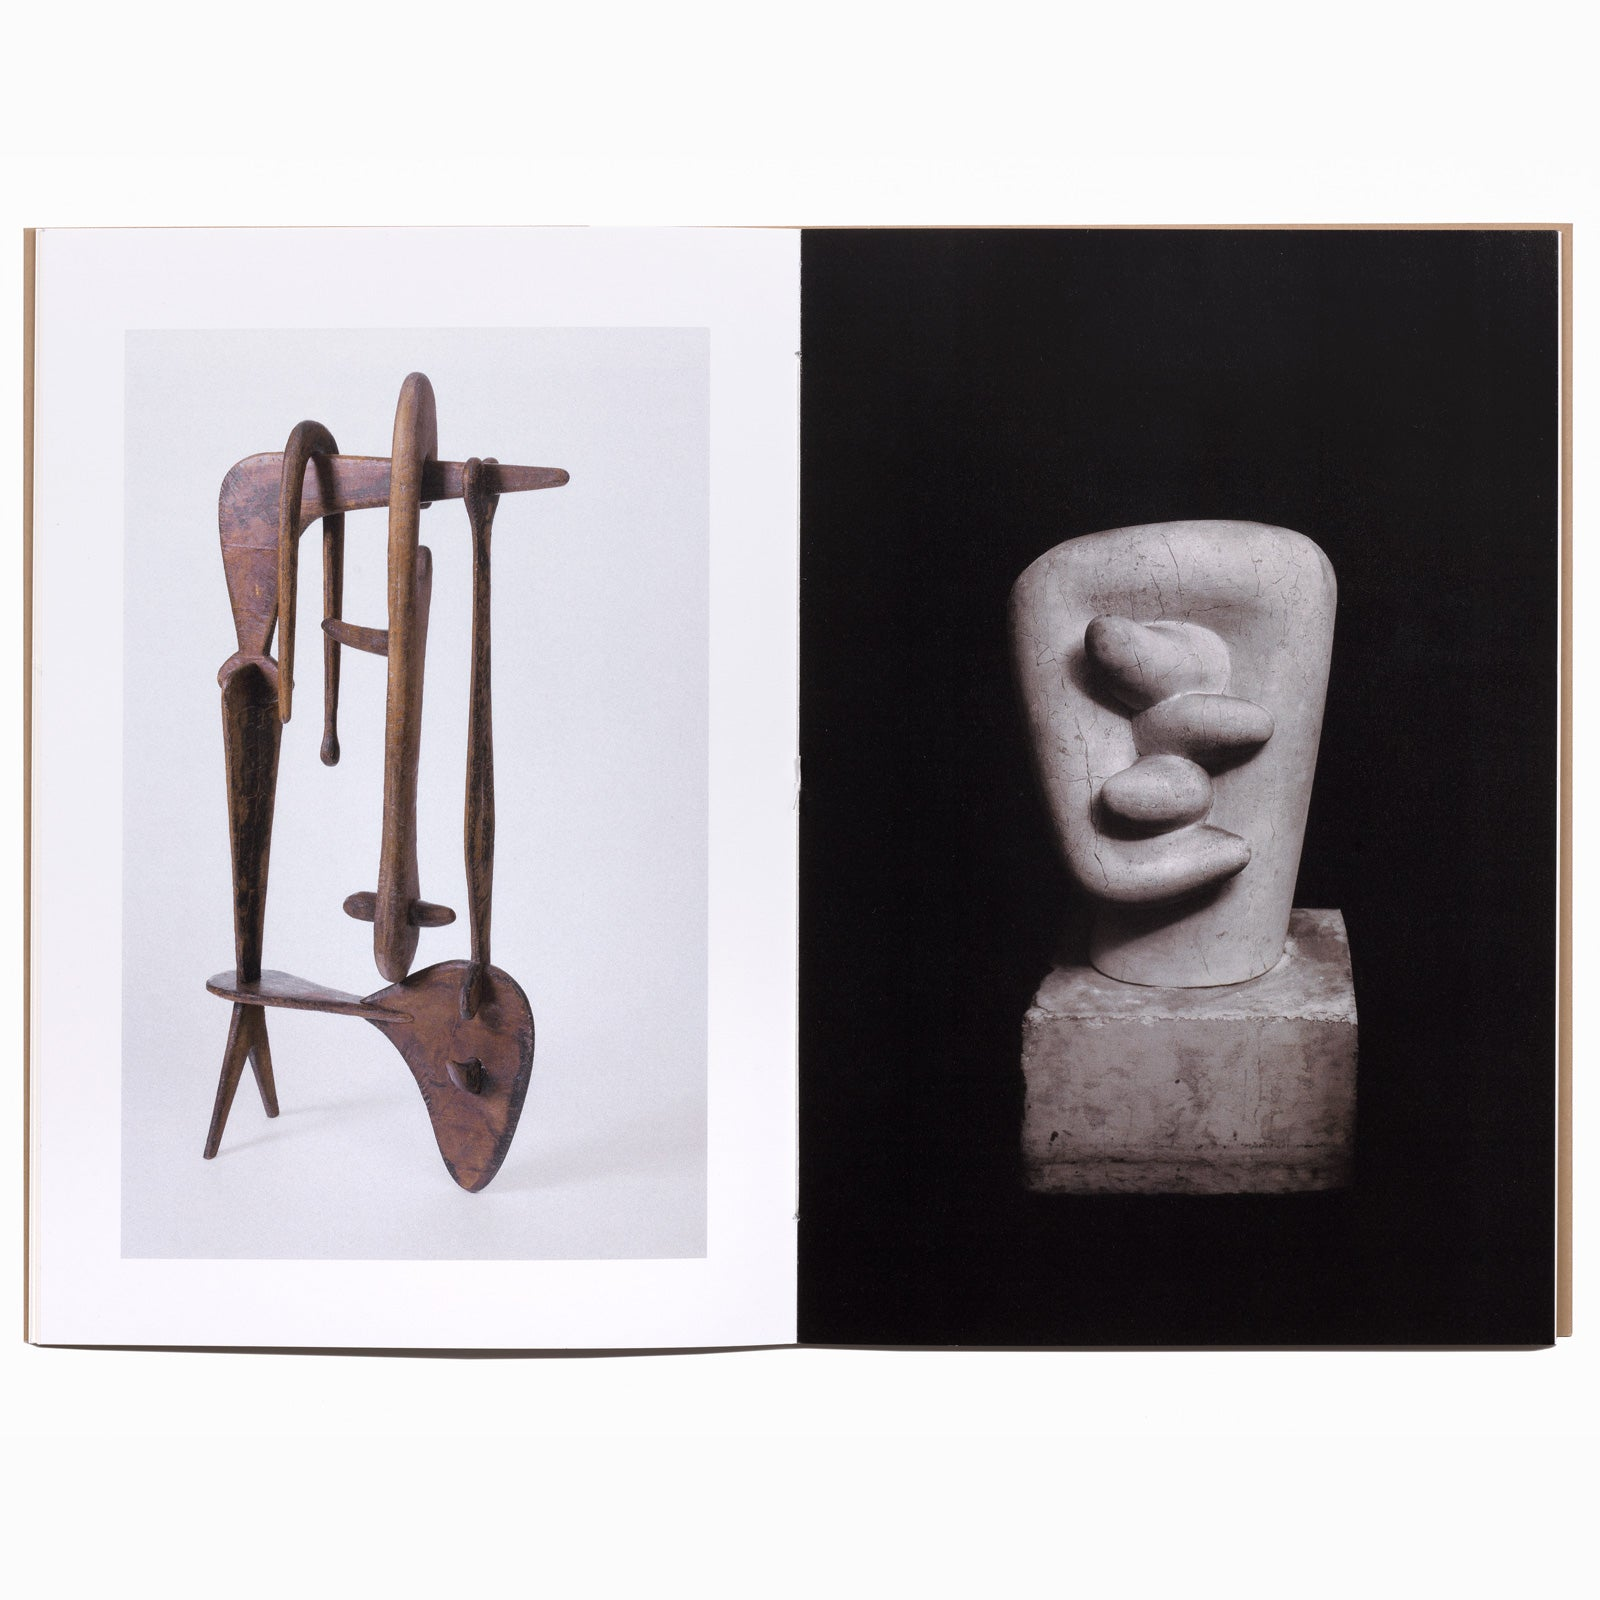 Image spread with Isamu Noguchi's mahogany wood interlocking sculpture 'Remembrance' on left on a light grey background with white frame, and white marble sculpture 'Noodle' on right with an intense black background. The book is hand bound with a subtle white thread knotted in the center of the page.